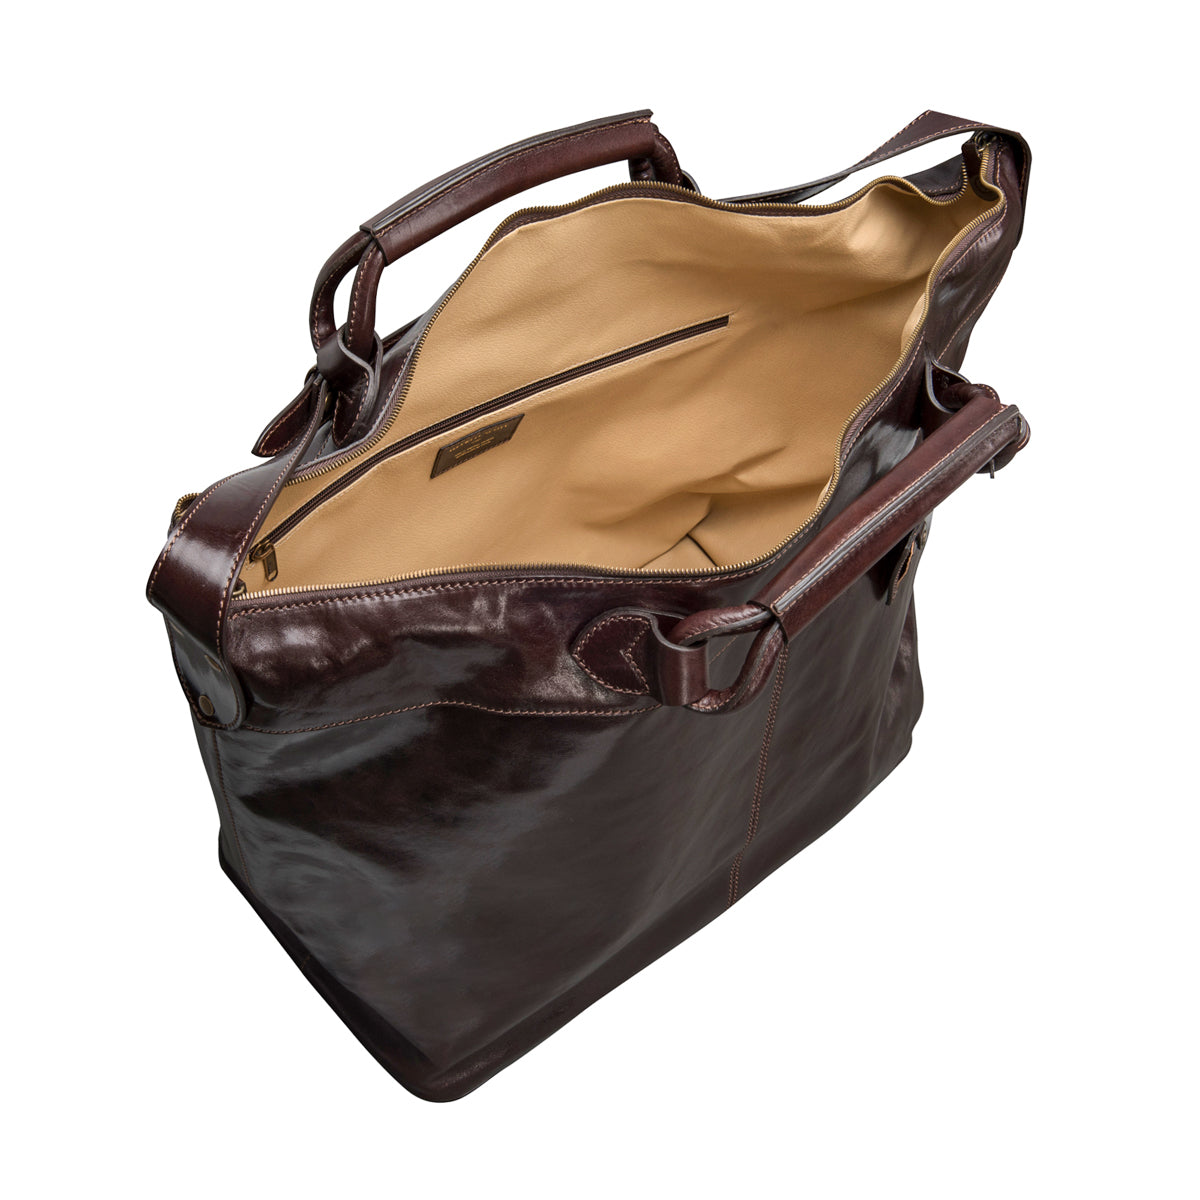 Image 4 of the 'Fabrizio' Chocolate Veg-Tanned Leather Holdall